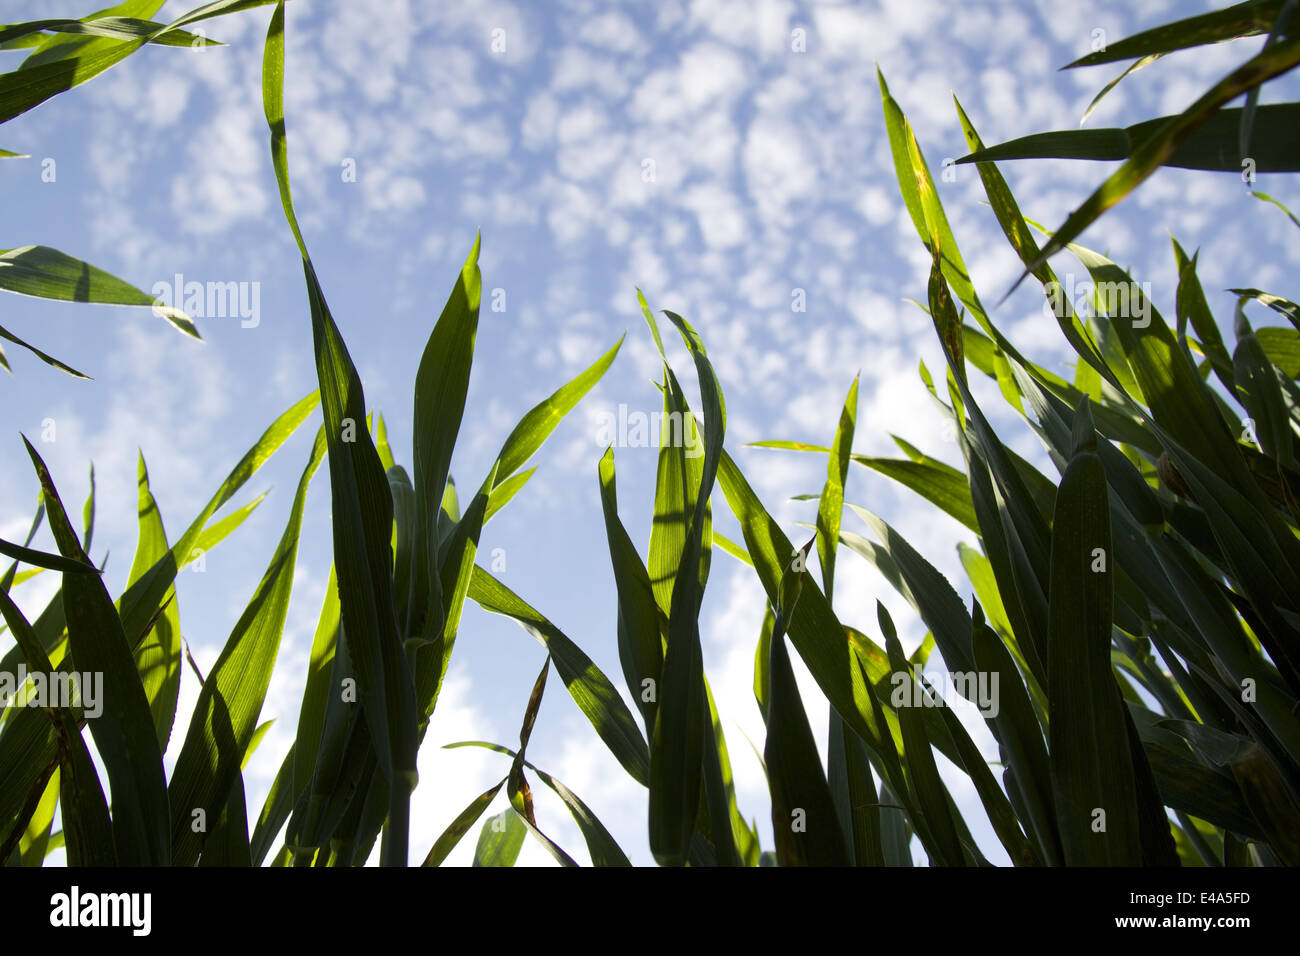 Worm's eye view of a field in England - Stock Image